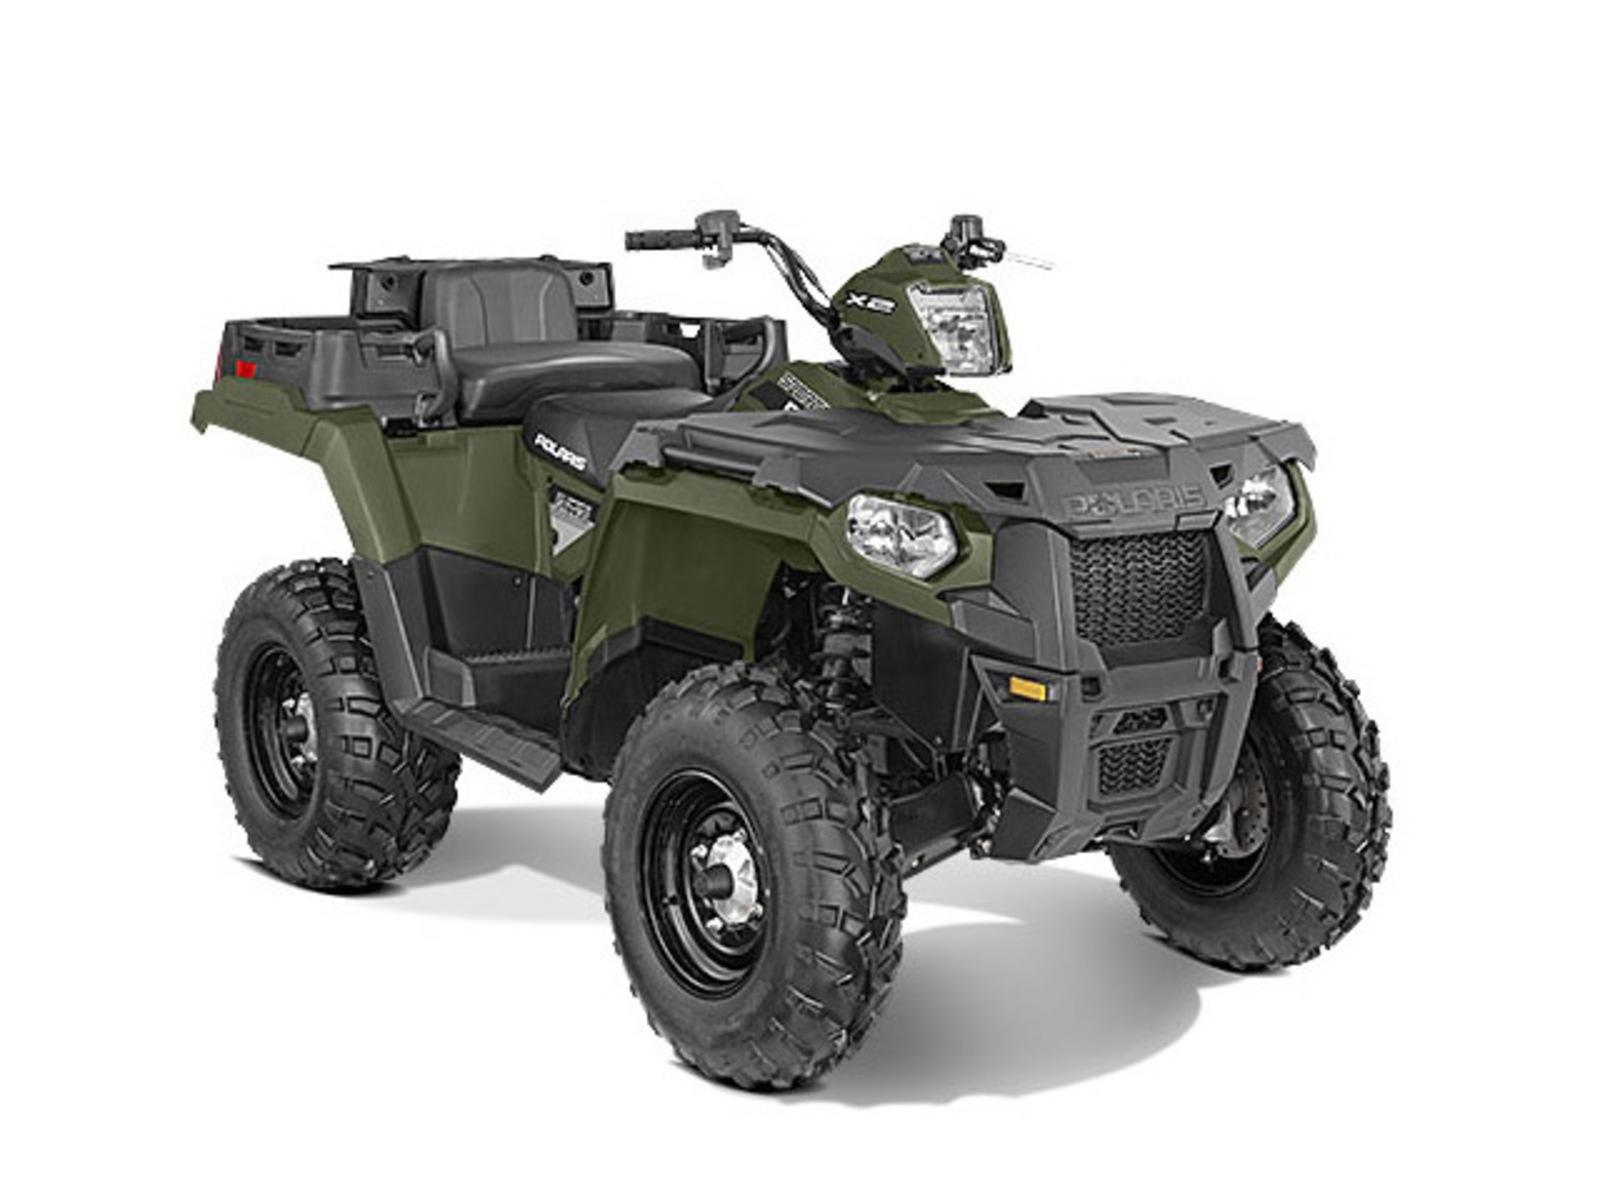 2015 polaris sportsman x2 570 eps review top speed. Black Bedroom Furniture Sets. Home Design Ideas